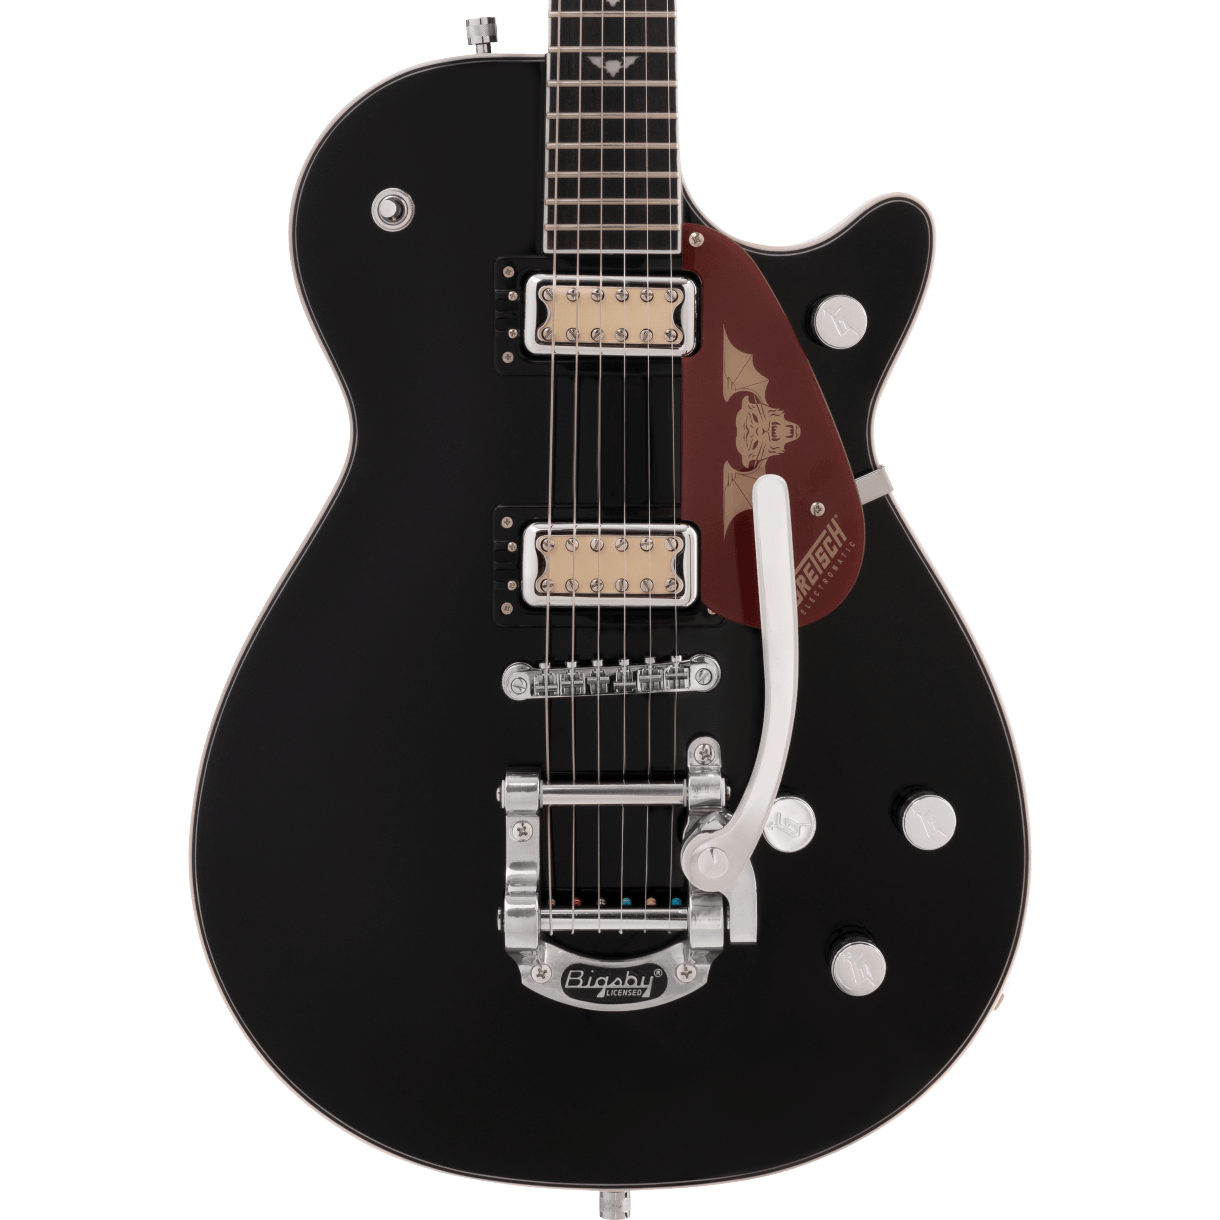 Gretsch G5230T Nick 13 Signature Electromatic Tiger Jet - Laurel Fingerboard, Black